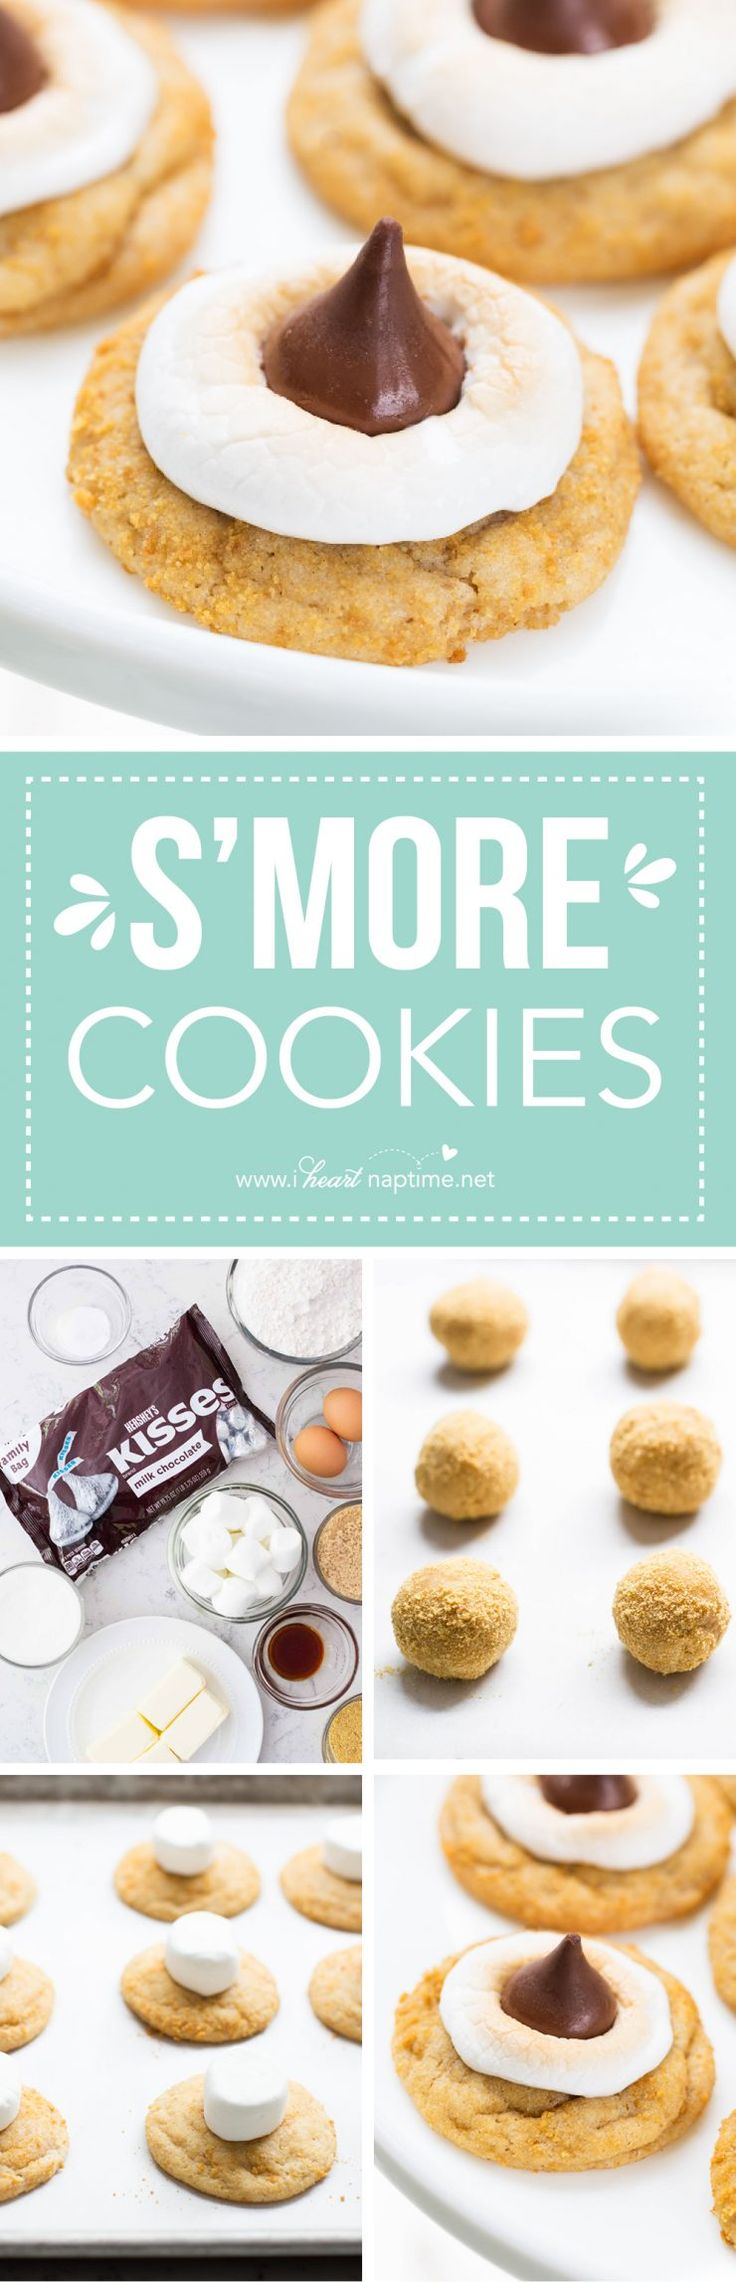 S'mores Cookies - I Heart Nap Time